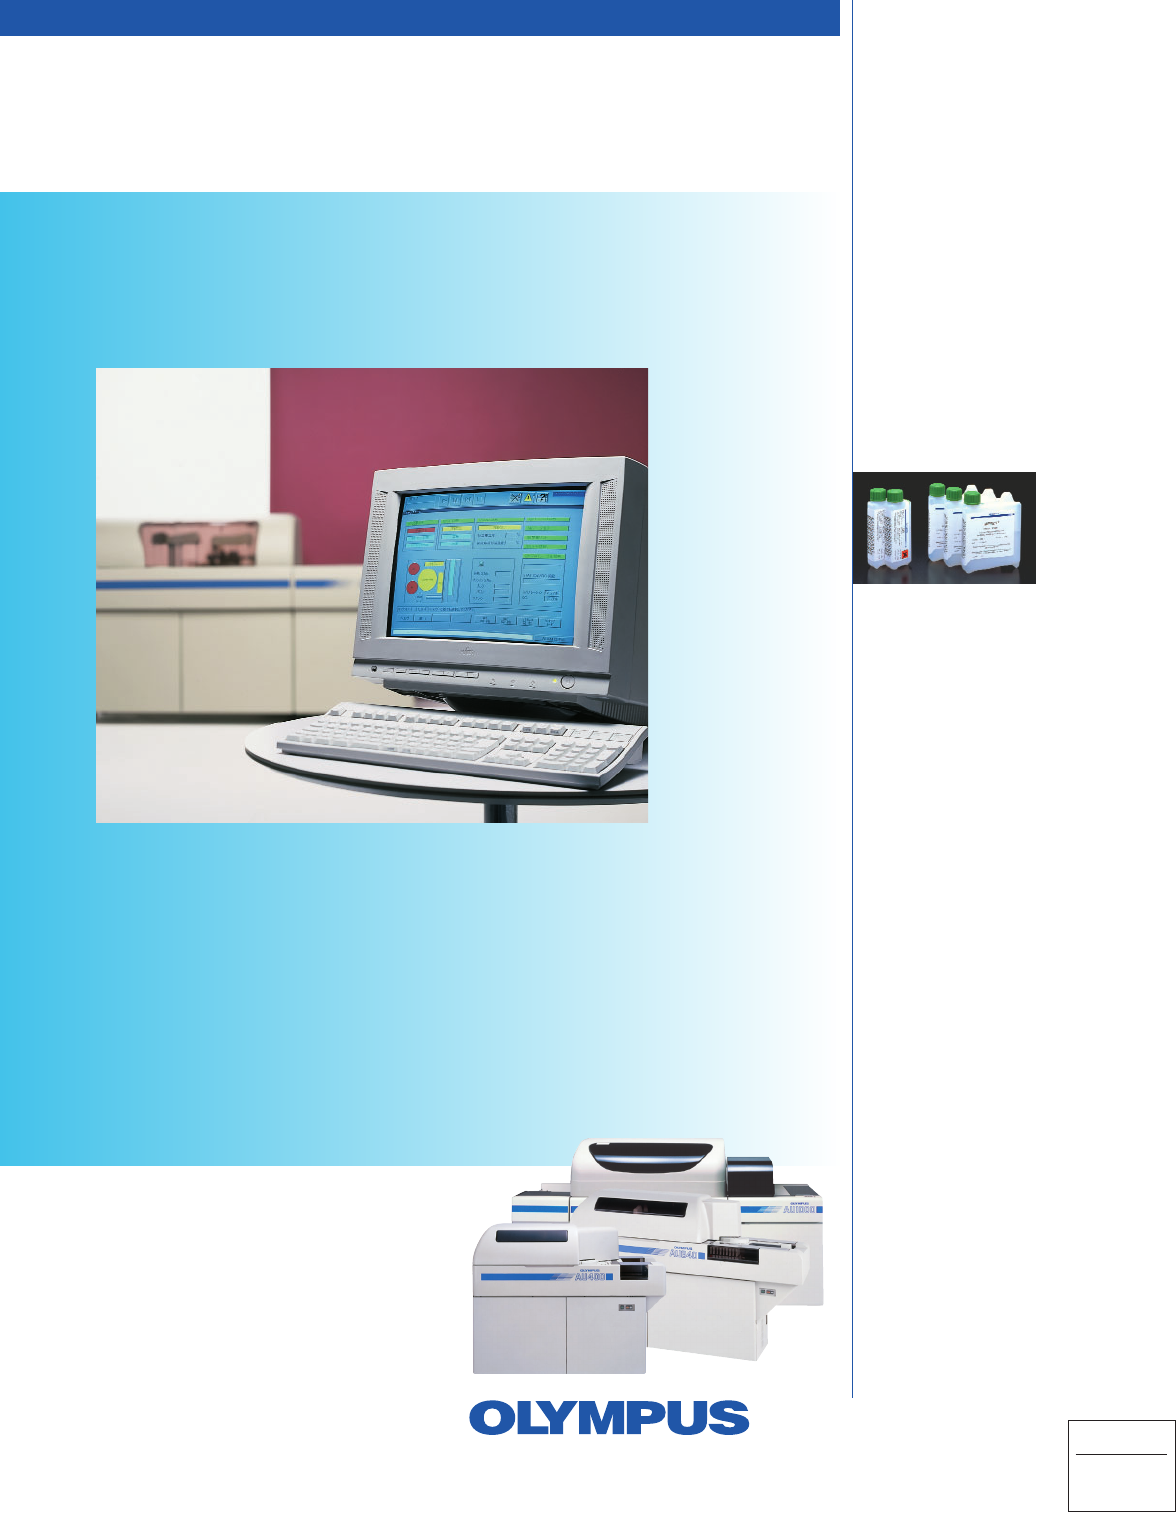 Pdf) analytical evaluation of the clinical chemistry analyzer.